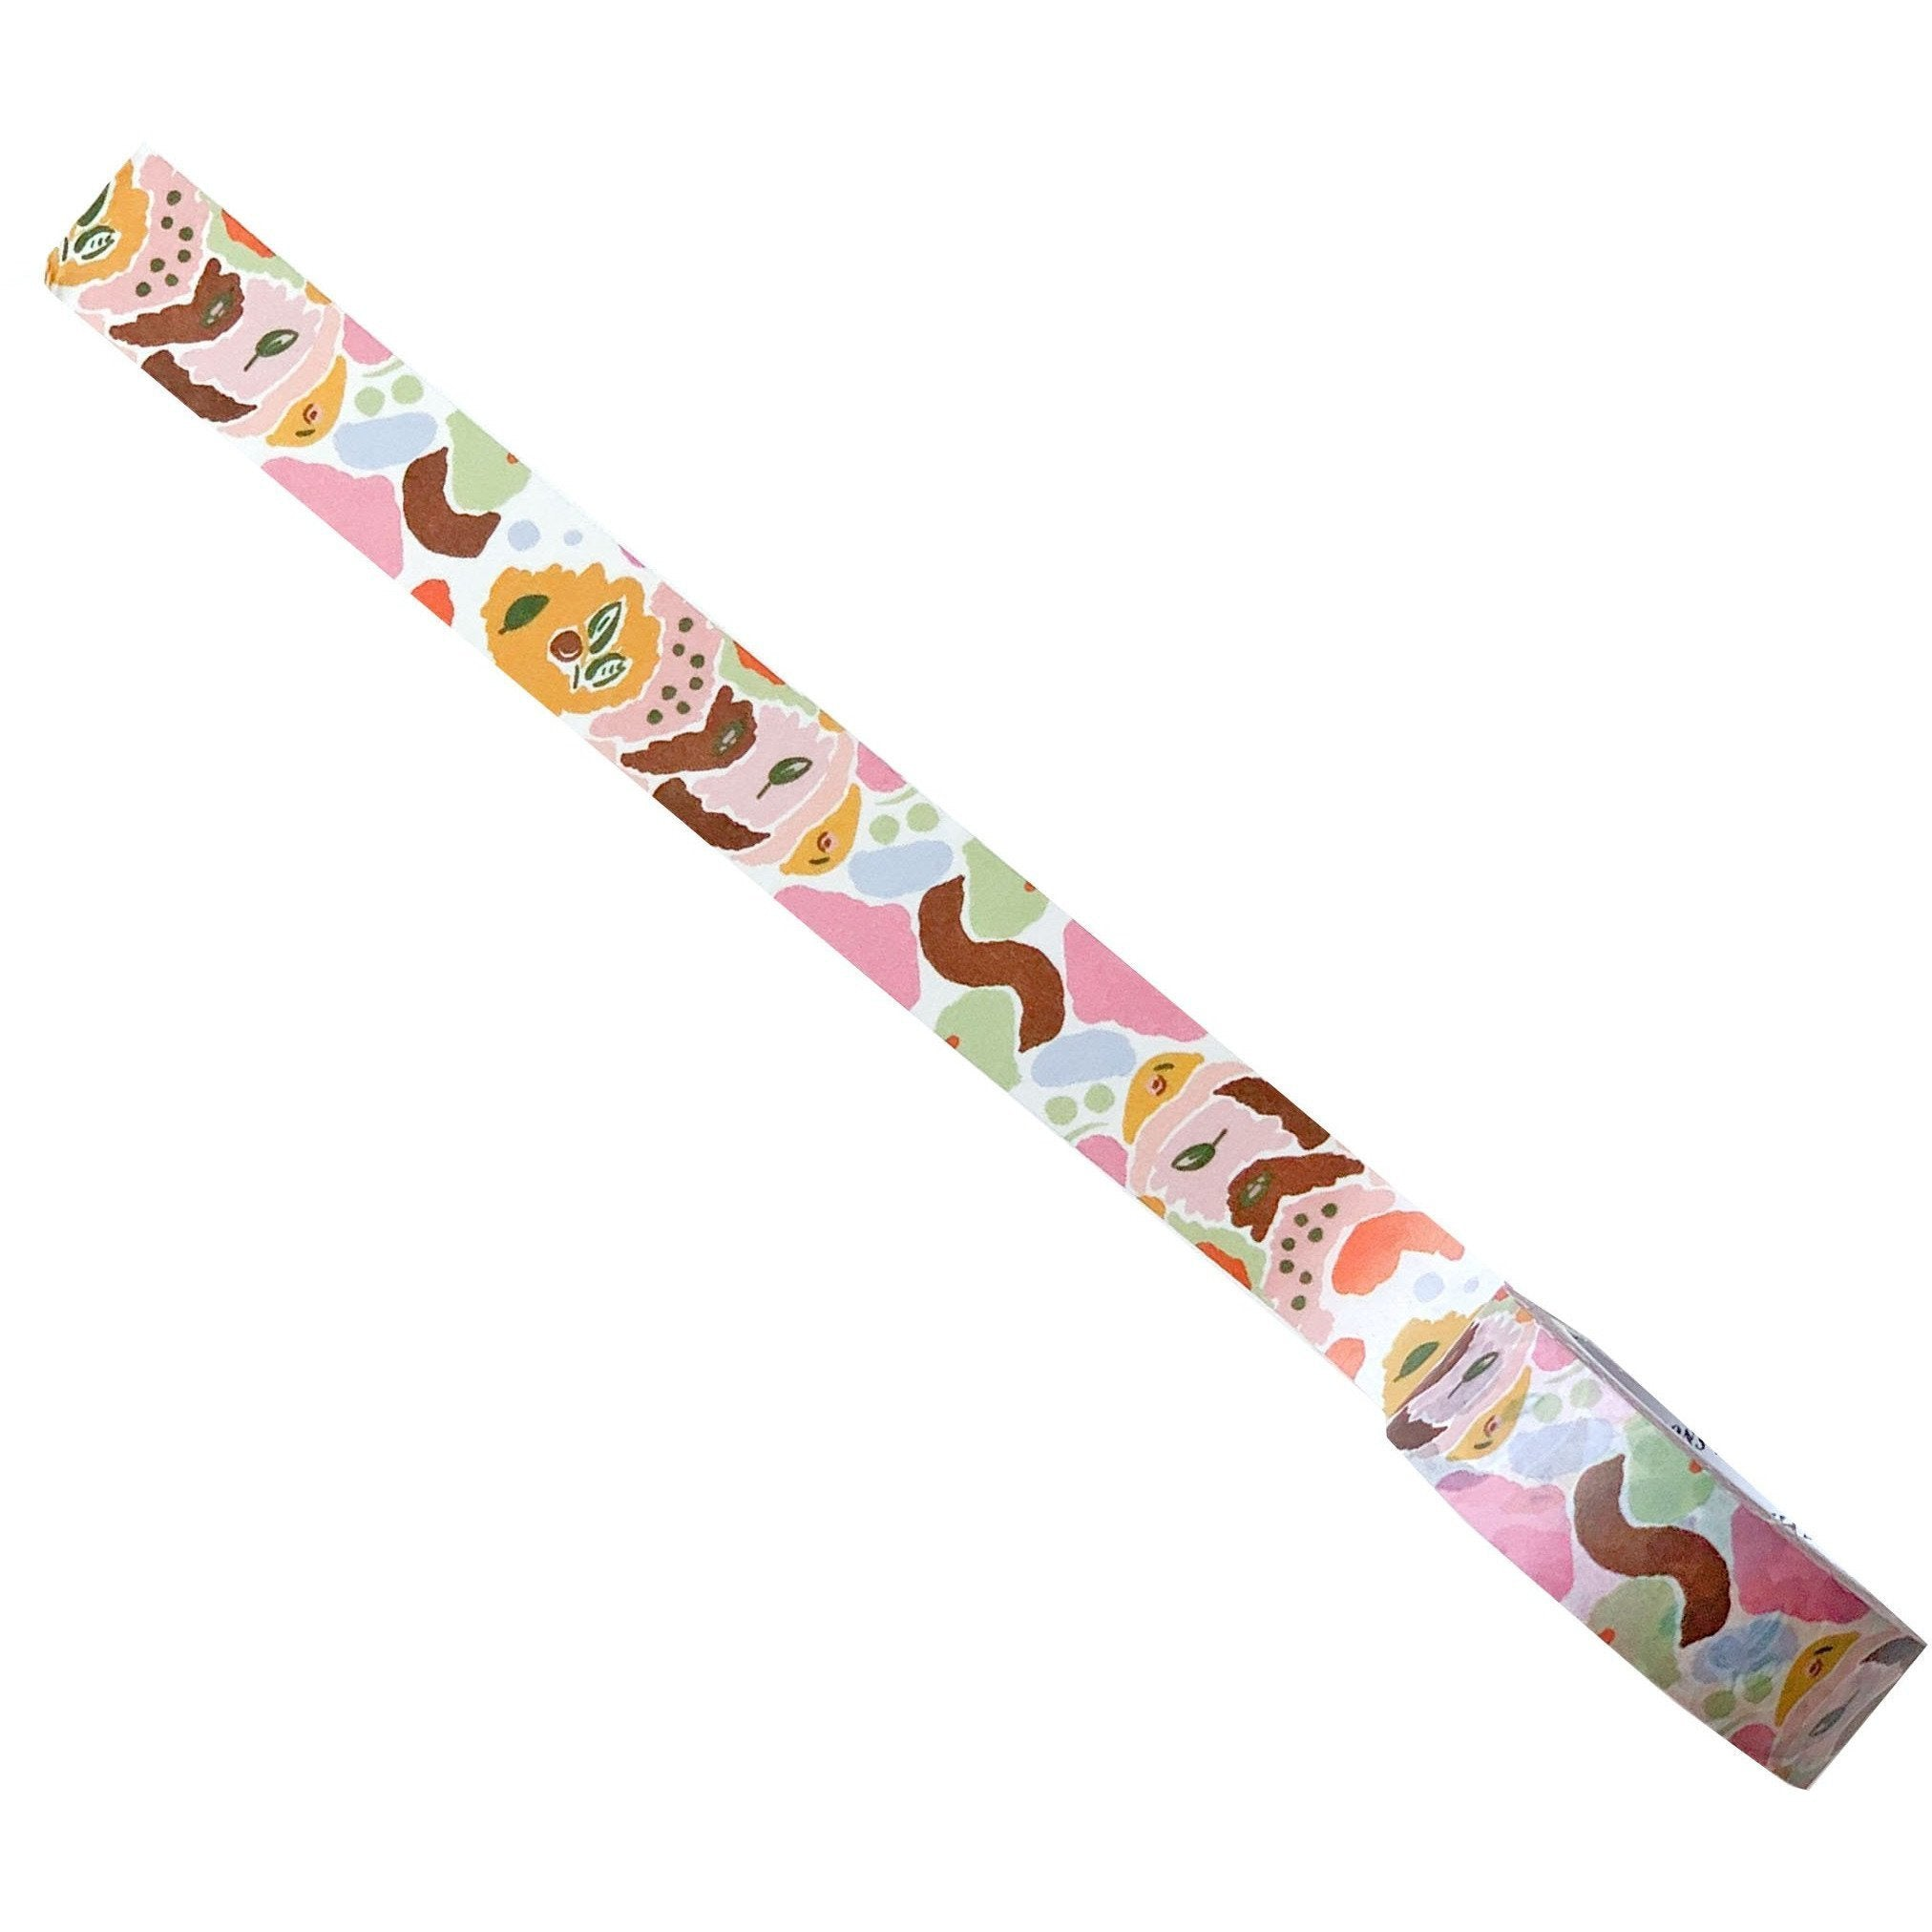 Decorative Washi Tape Featuring Colorful Modern Abstract Brushwork - The First Snow